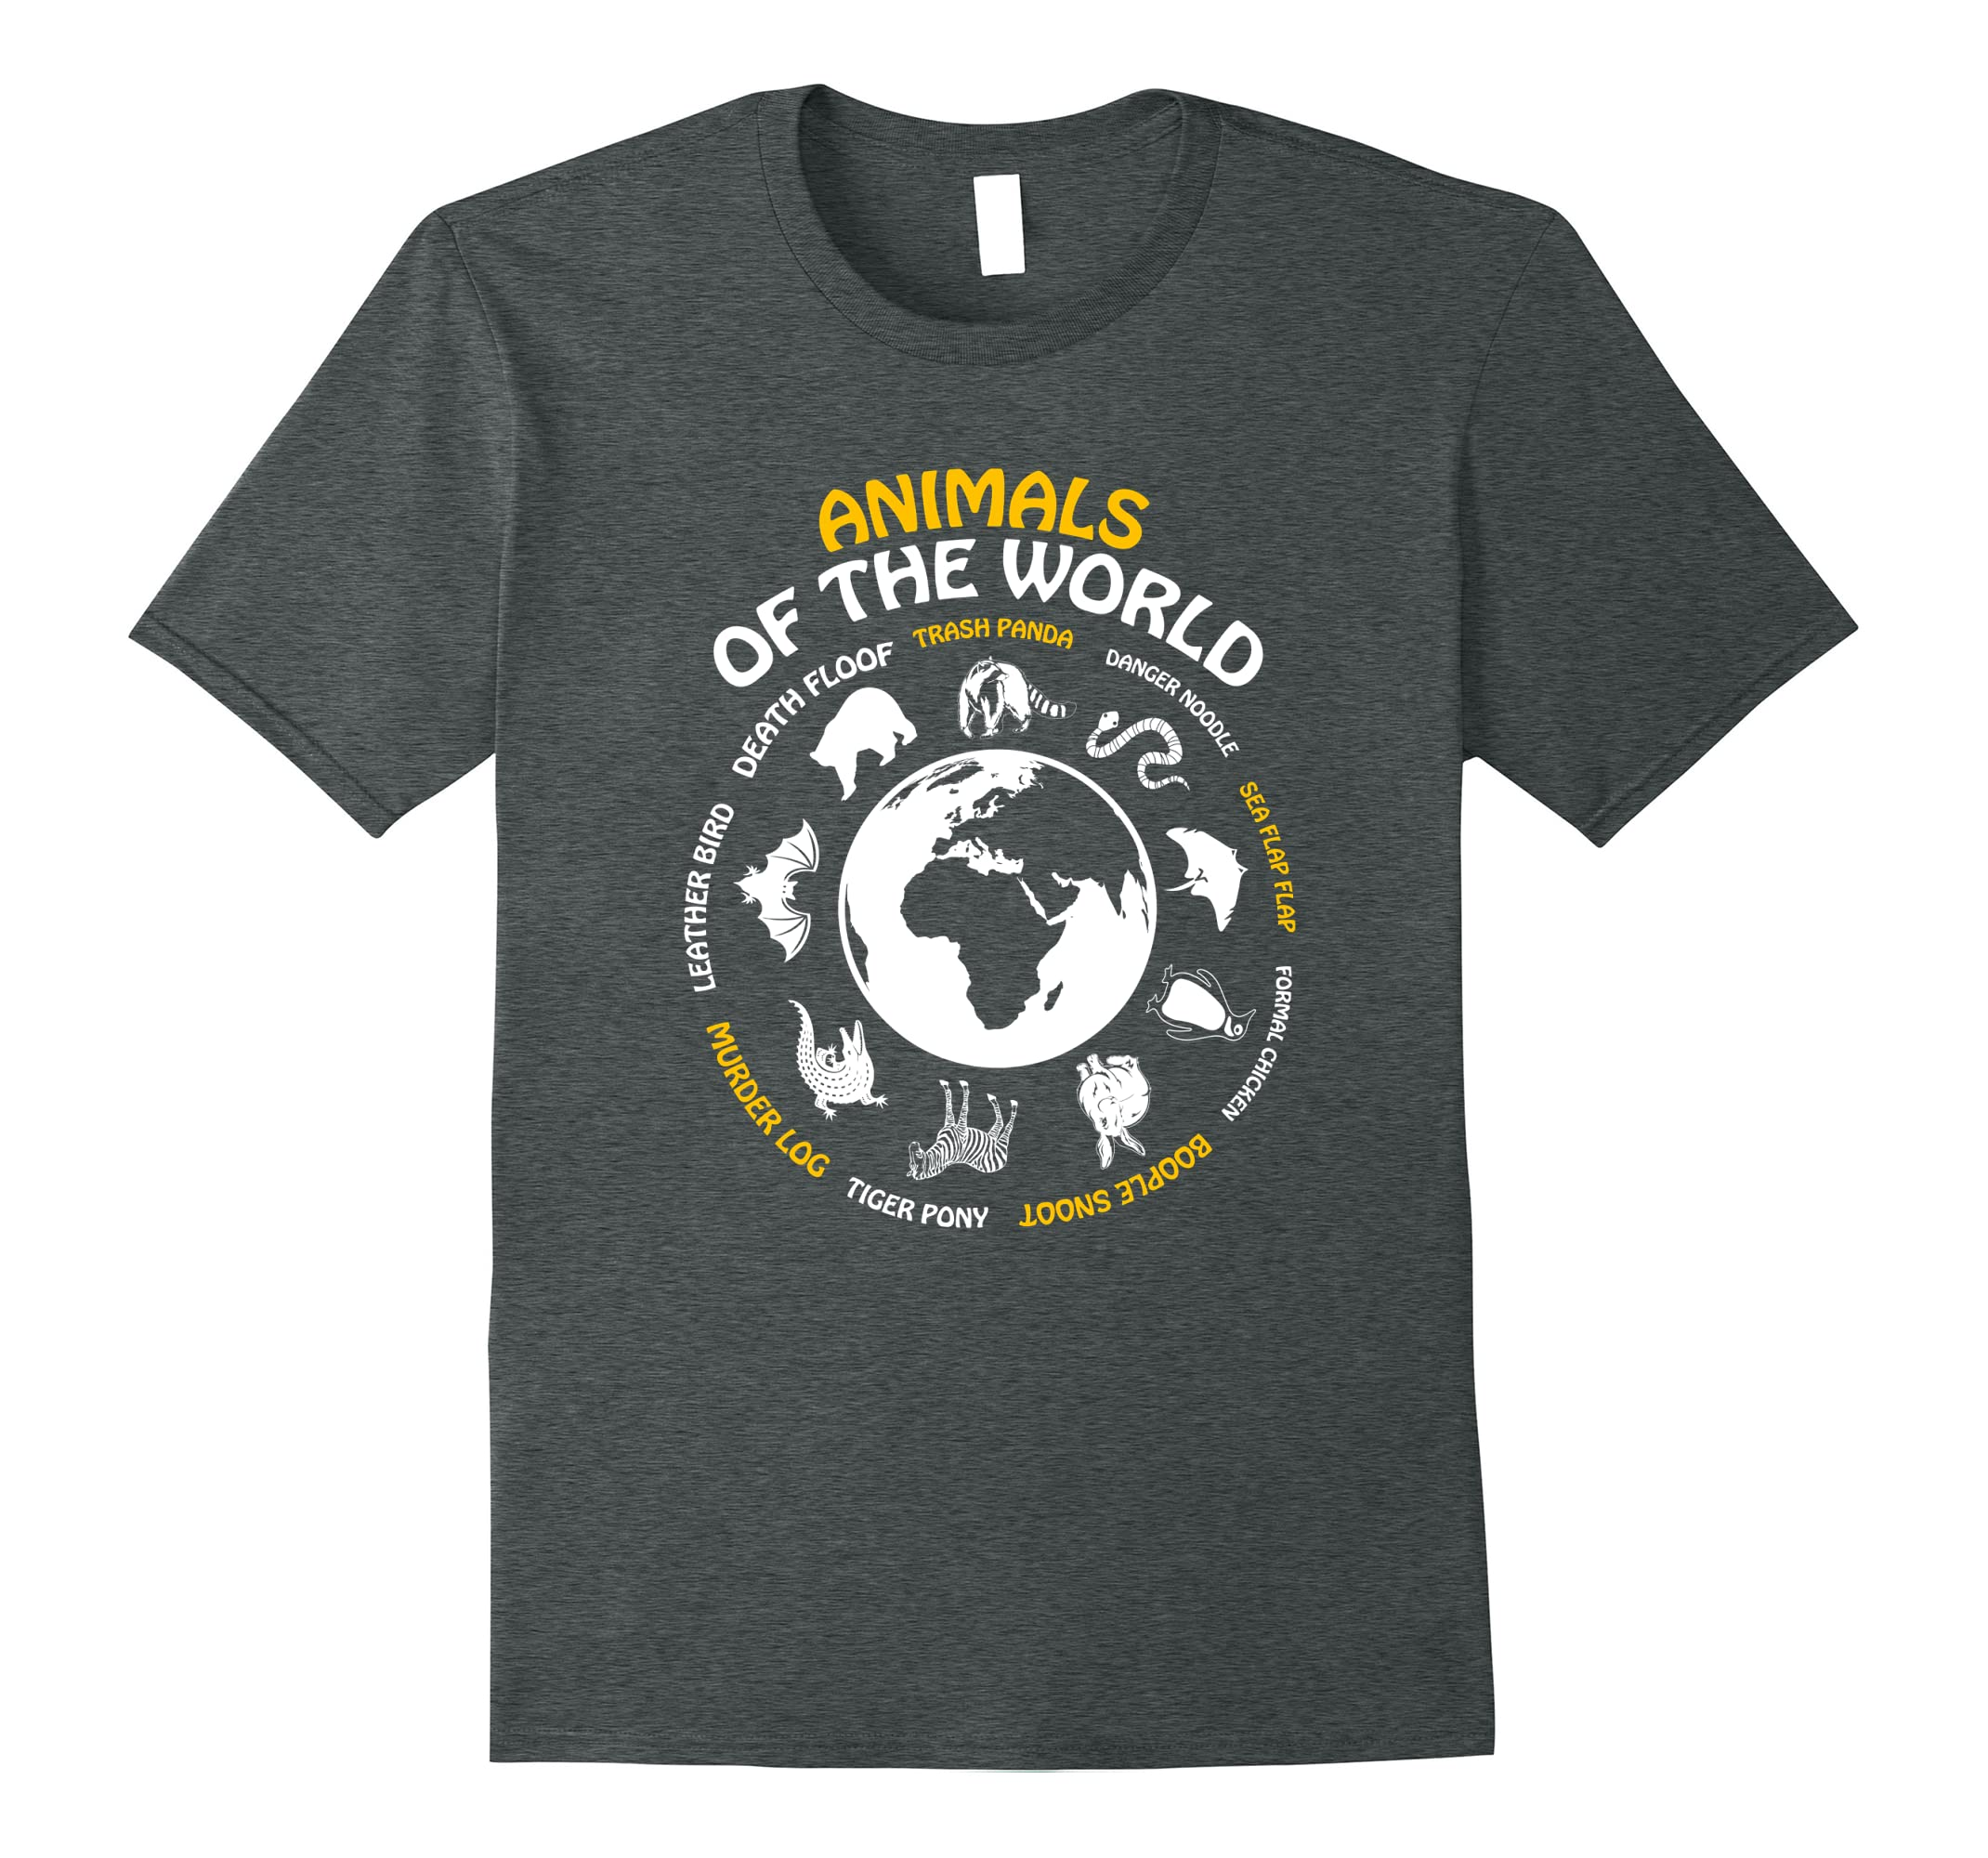 68f21682c Rare Animals of The World Tshirt Snorg Tees Funny Gift Kids-RT ...